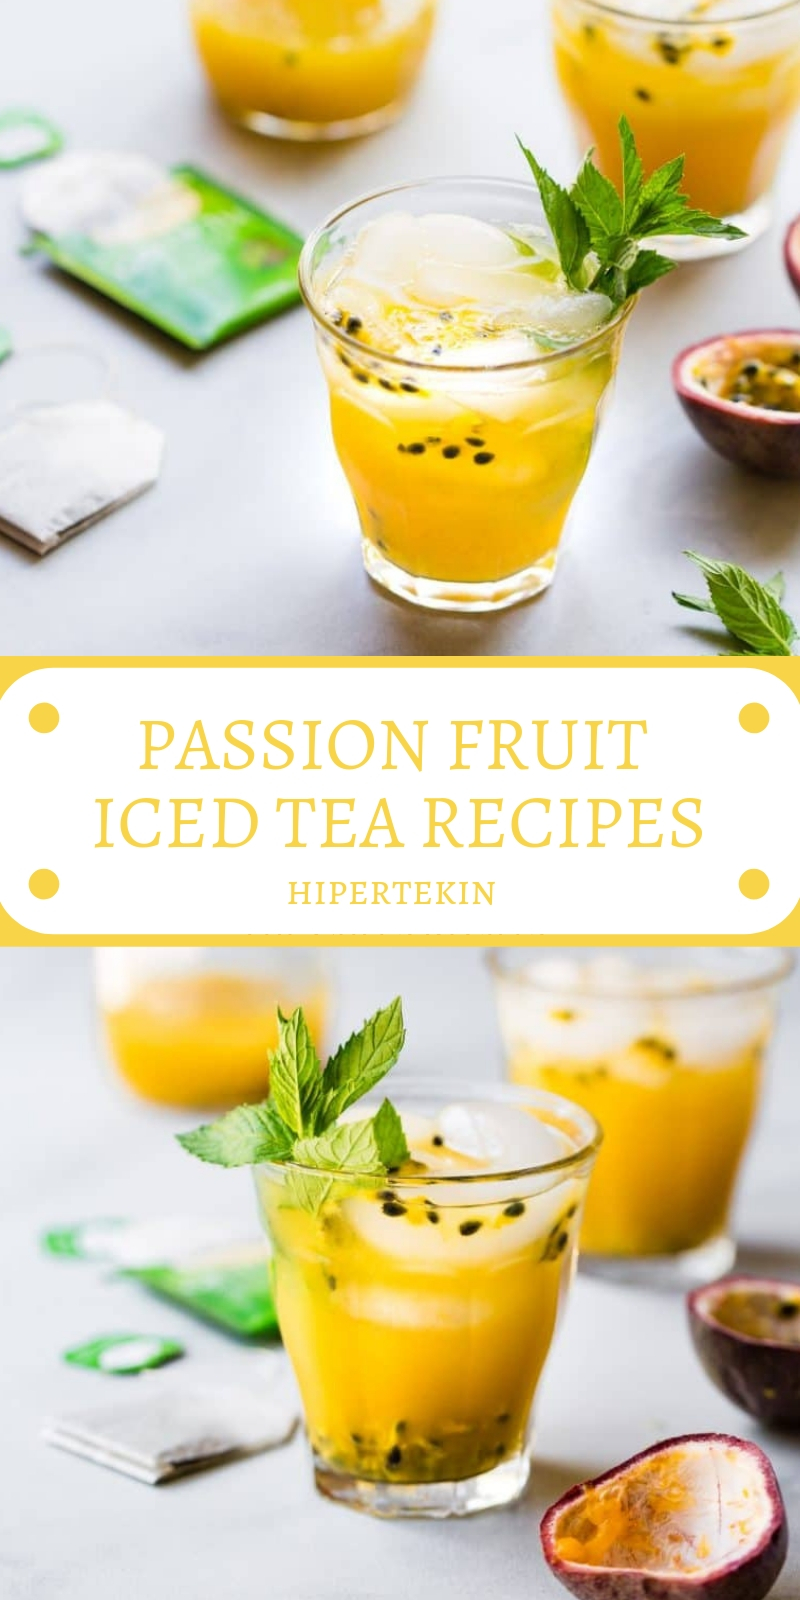 PASSION FRUIT ICED TEA RECIPES